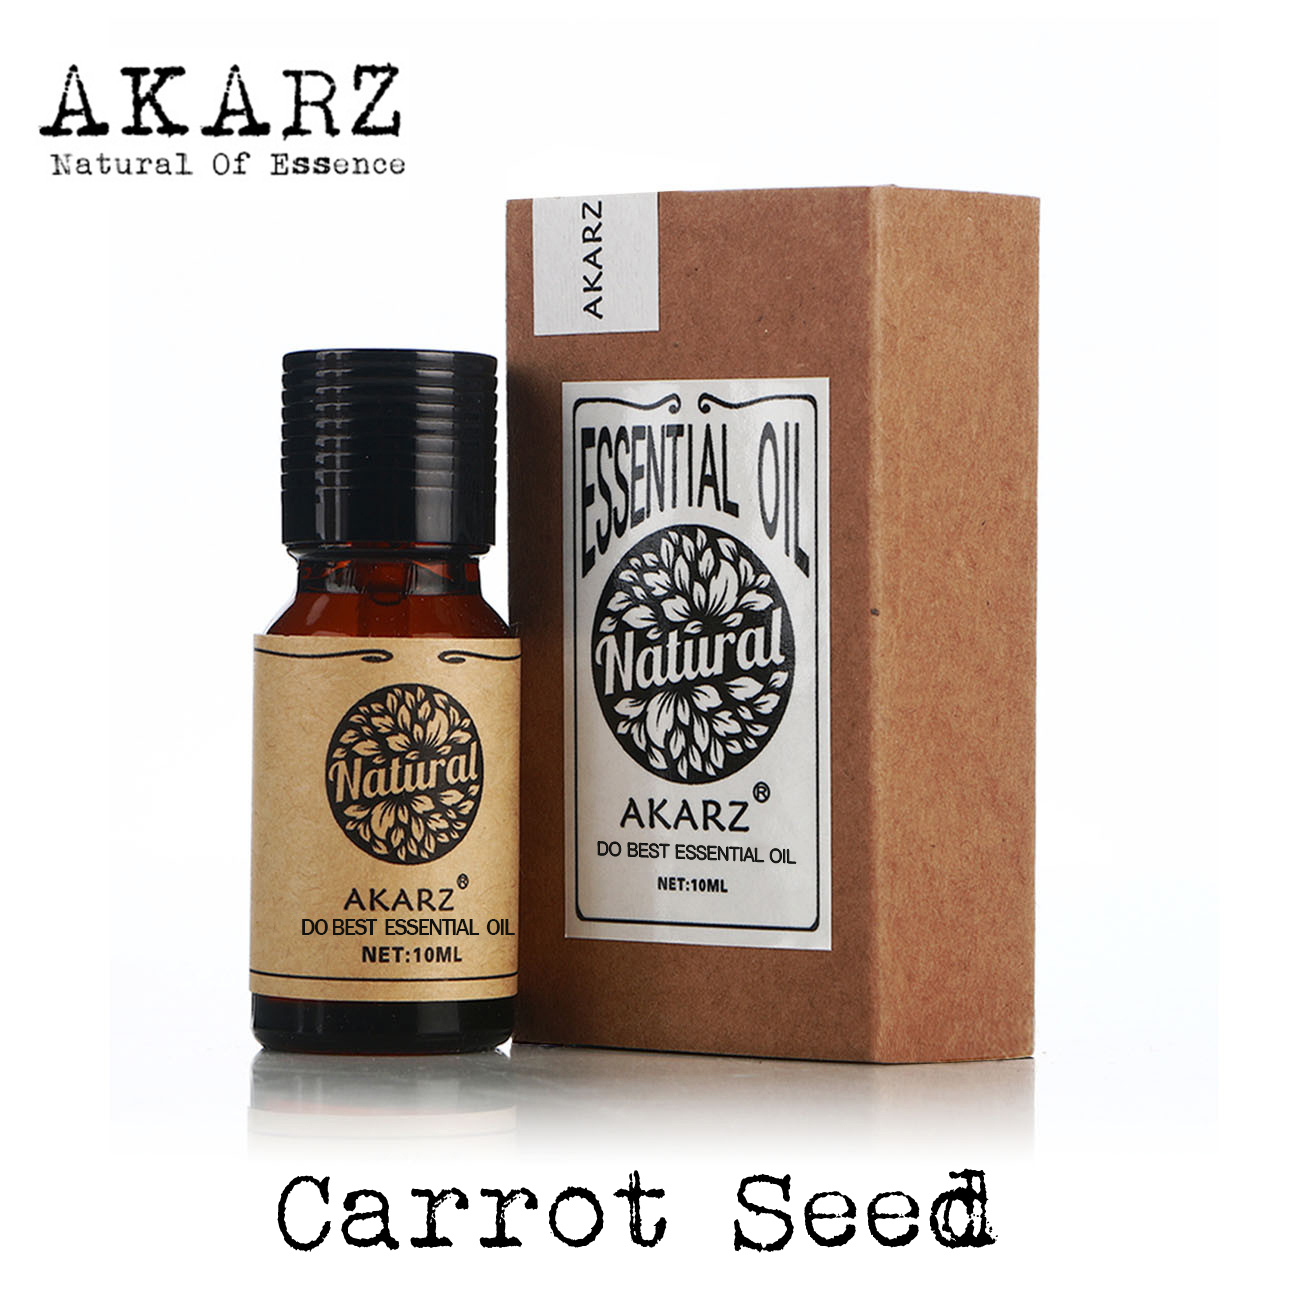 AKARZ Famous brand natural carrot seed essential oil Improve skin color elasticity Detox carrot seed oil grid carrot pants